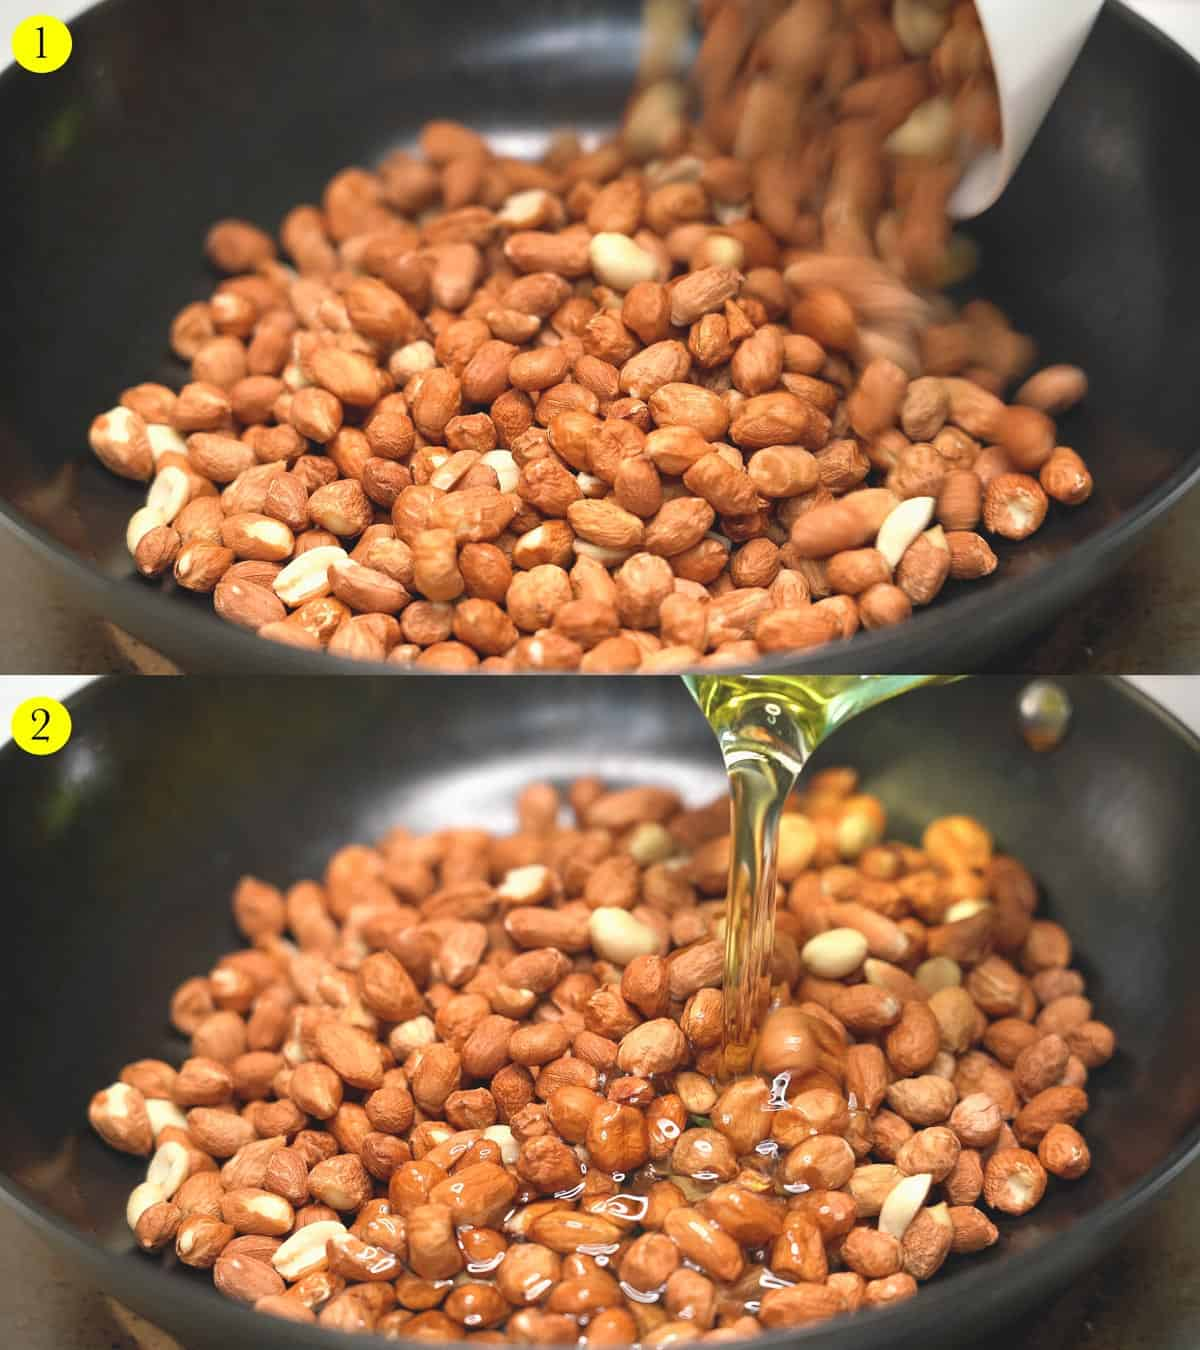 1. Pouring raw, shelled peanuts on a wok.  2. Pouring oil on the raw, shelled peanuts in a wok.